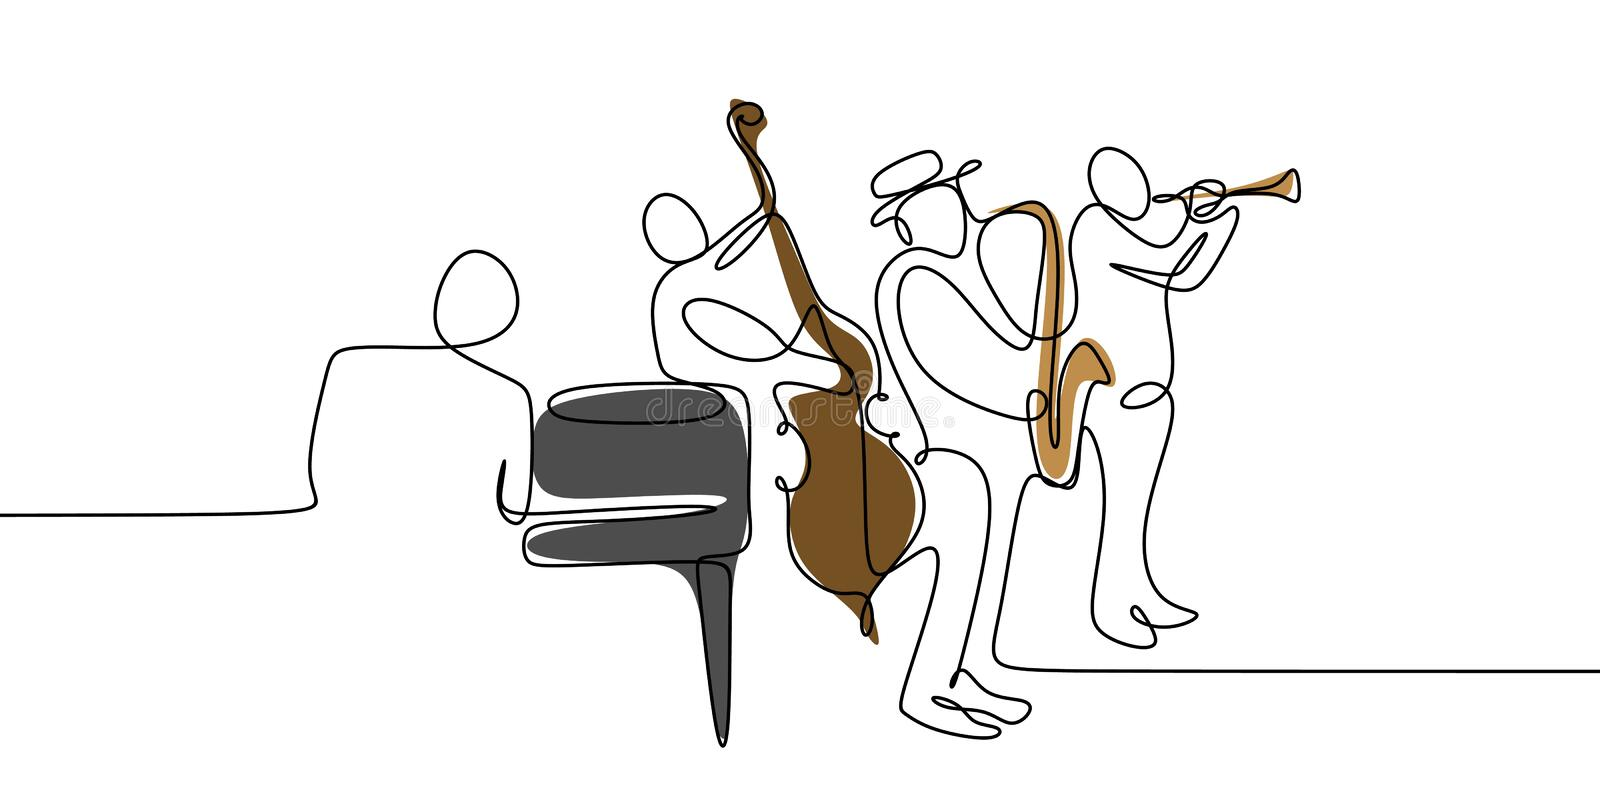 continuous one line drawing of jazz player music group minimalsm design royalty free illustration